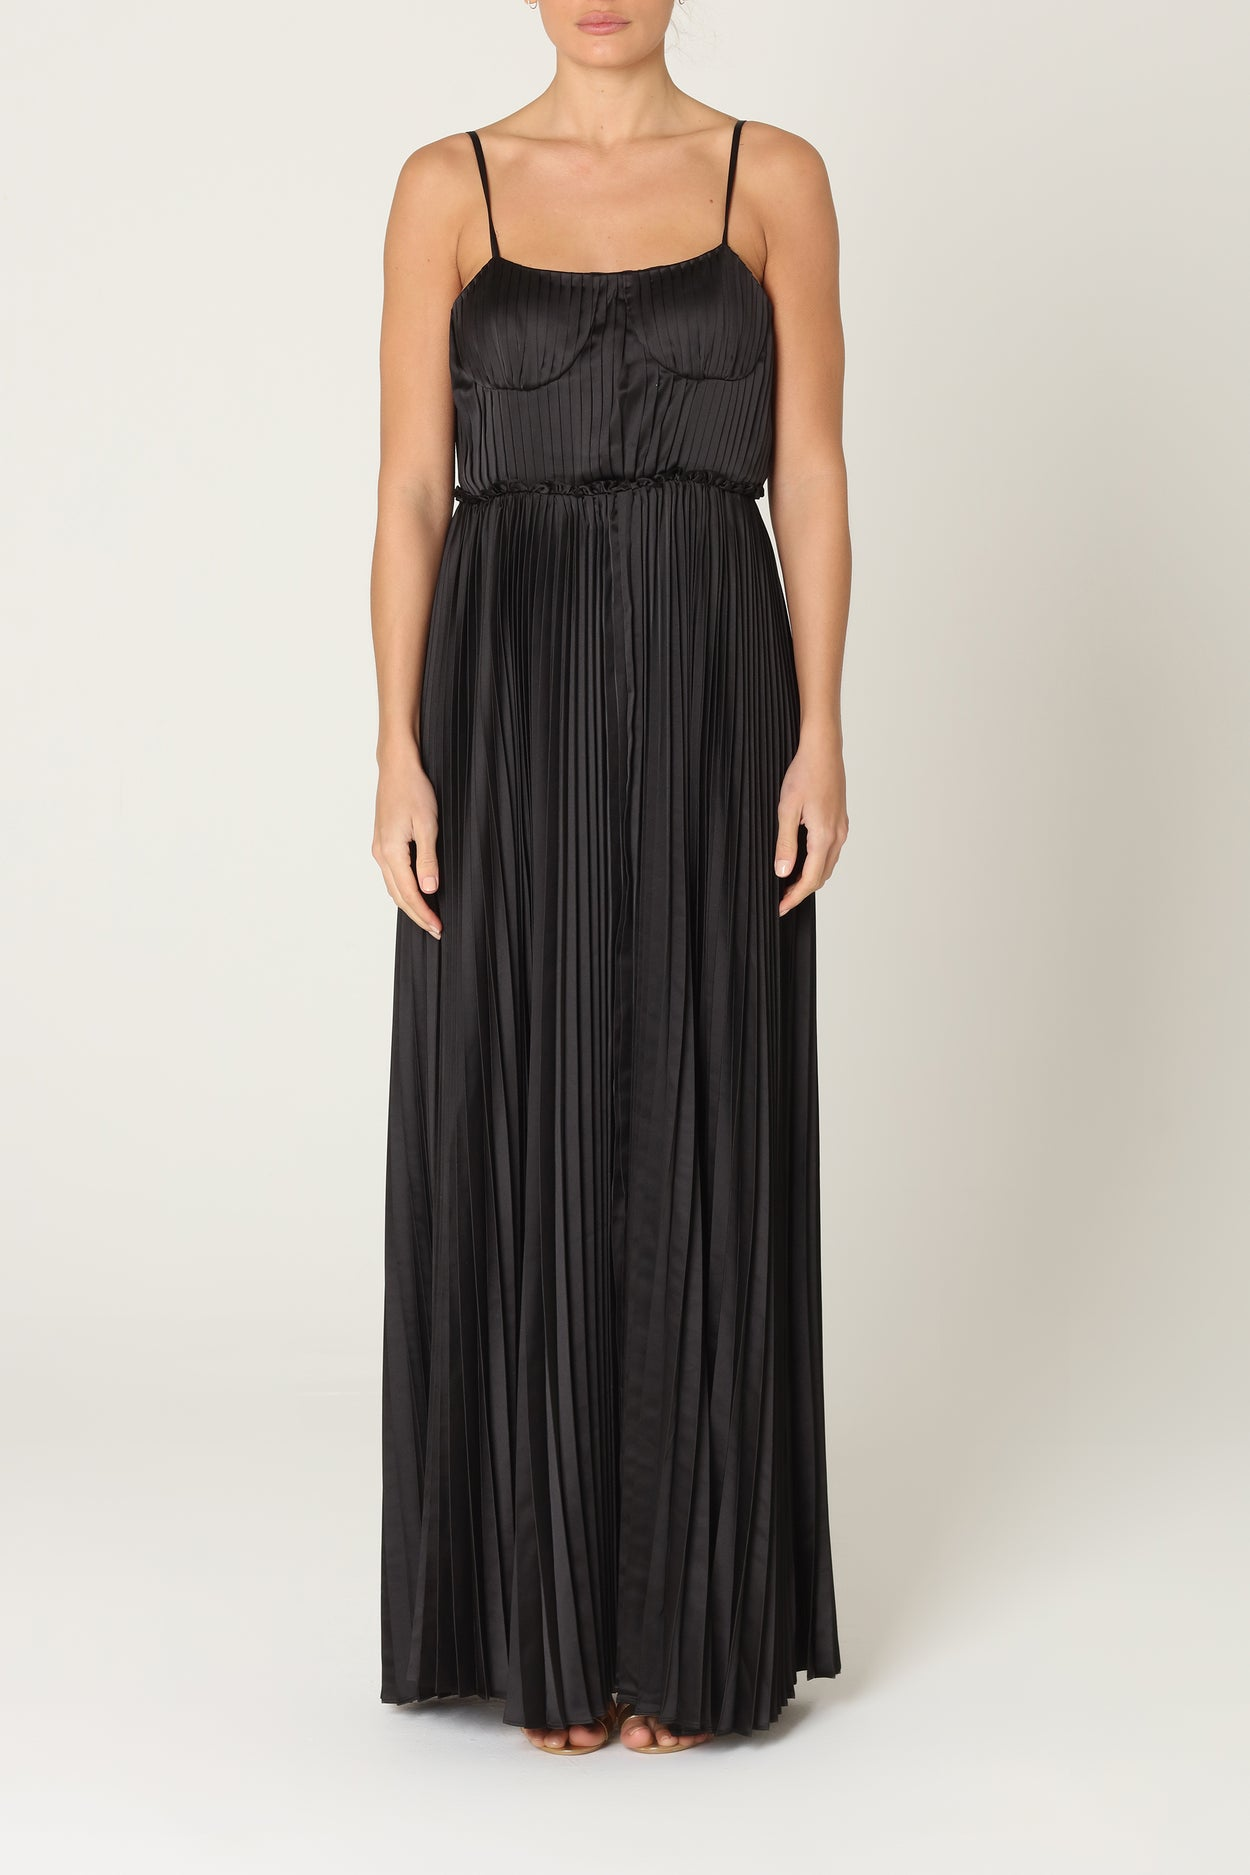 Black Satin Pleated Maxi Dress